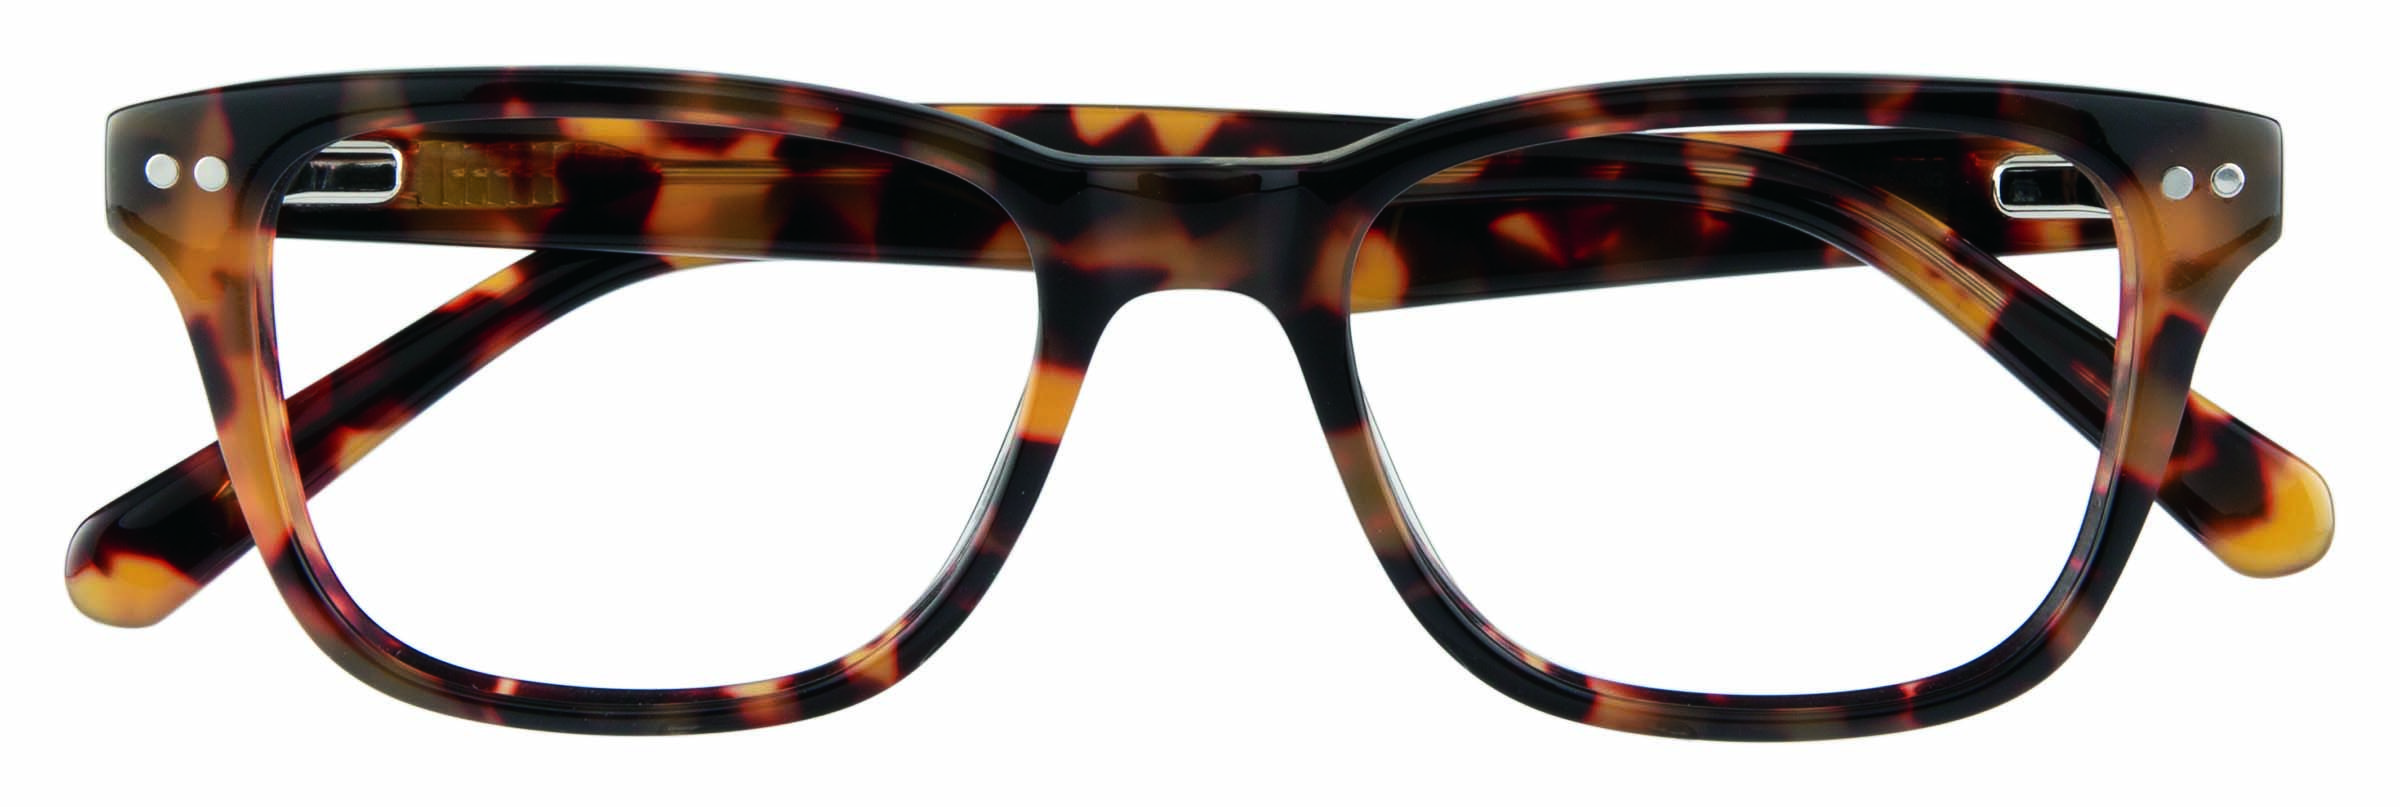 4da90ce310c Kate Young for Tura Kids Eyewear - optical frame K900 tokyo tortoise plus 3  other colors